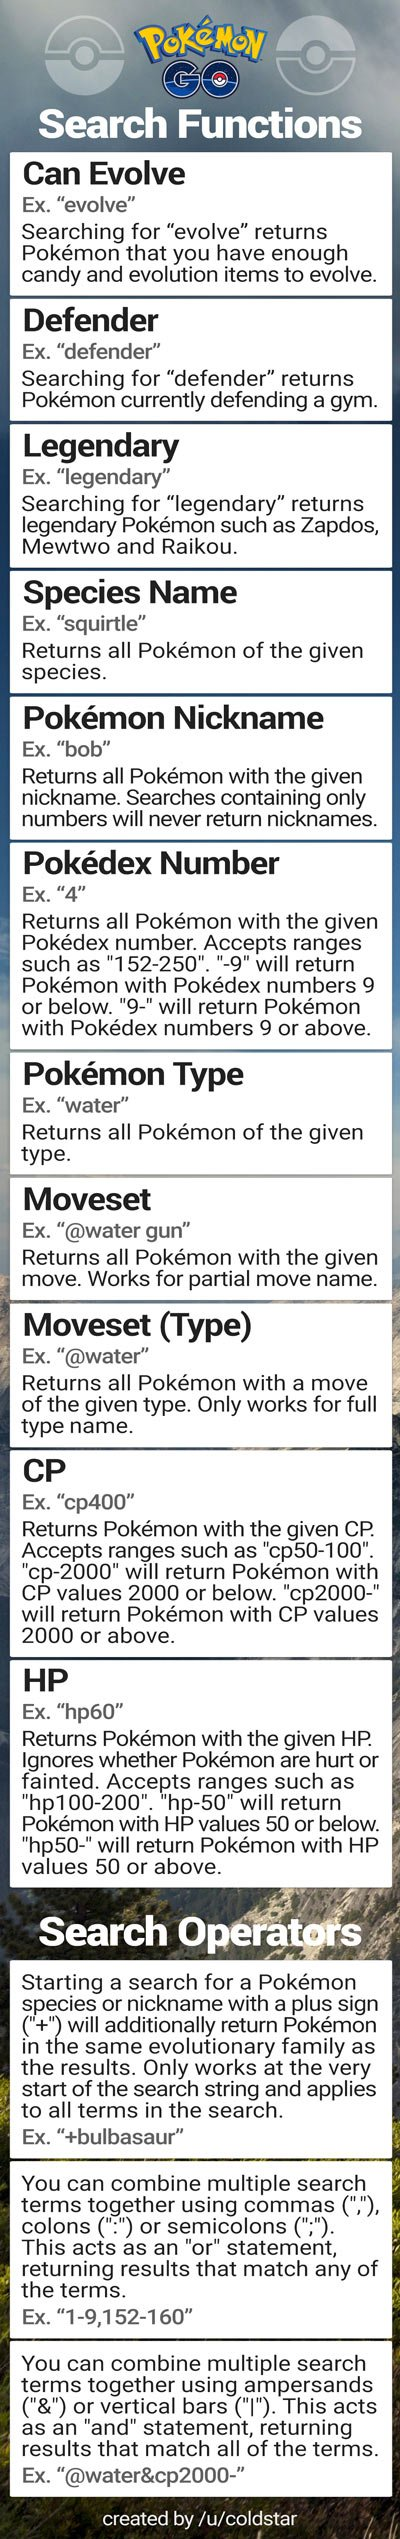 Pokemon-GO-Search-Functions